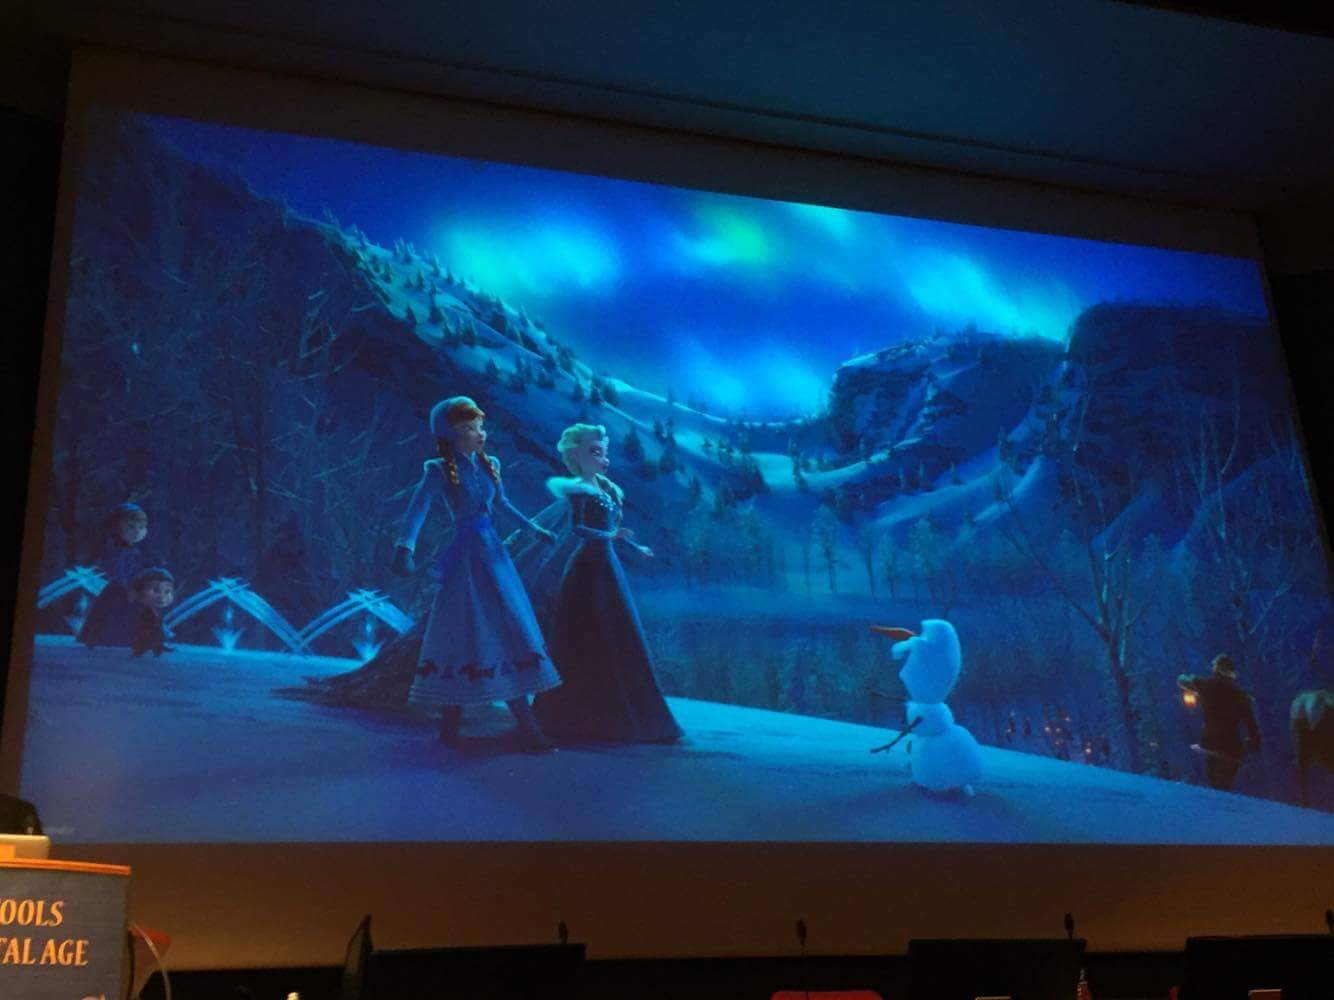 olaf frozen adventure jacomini view conference3